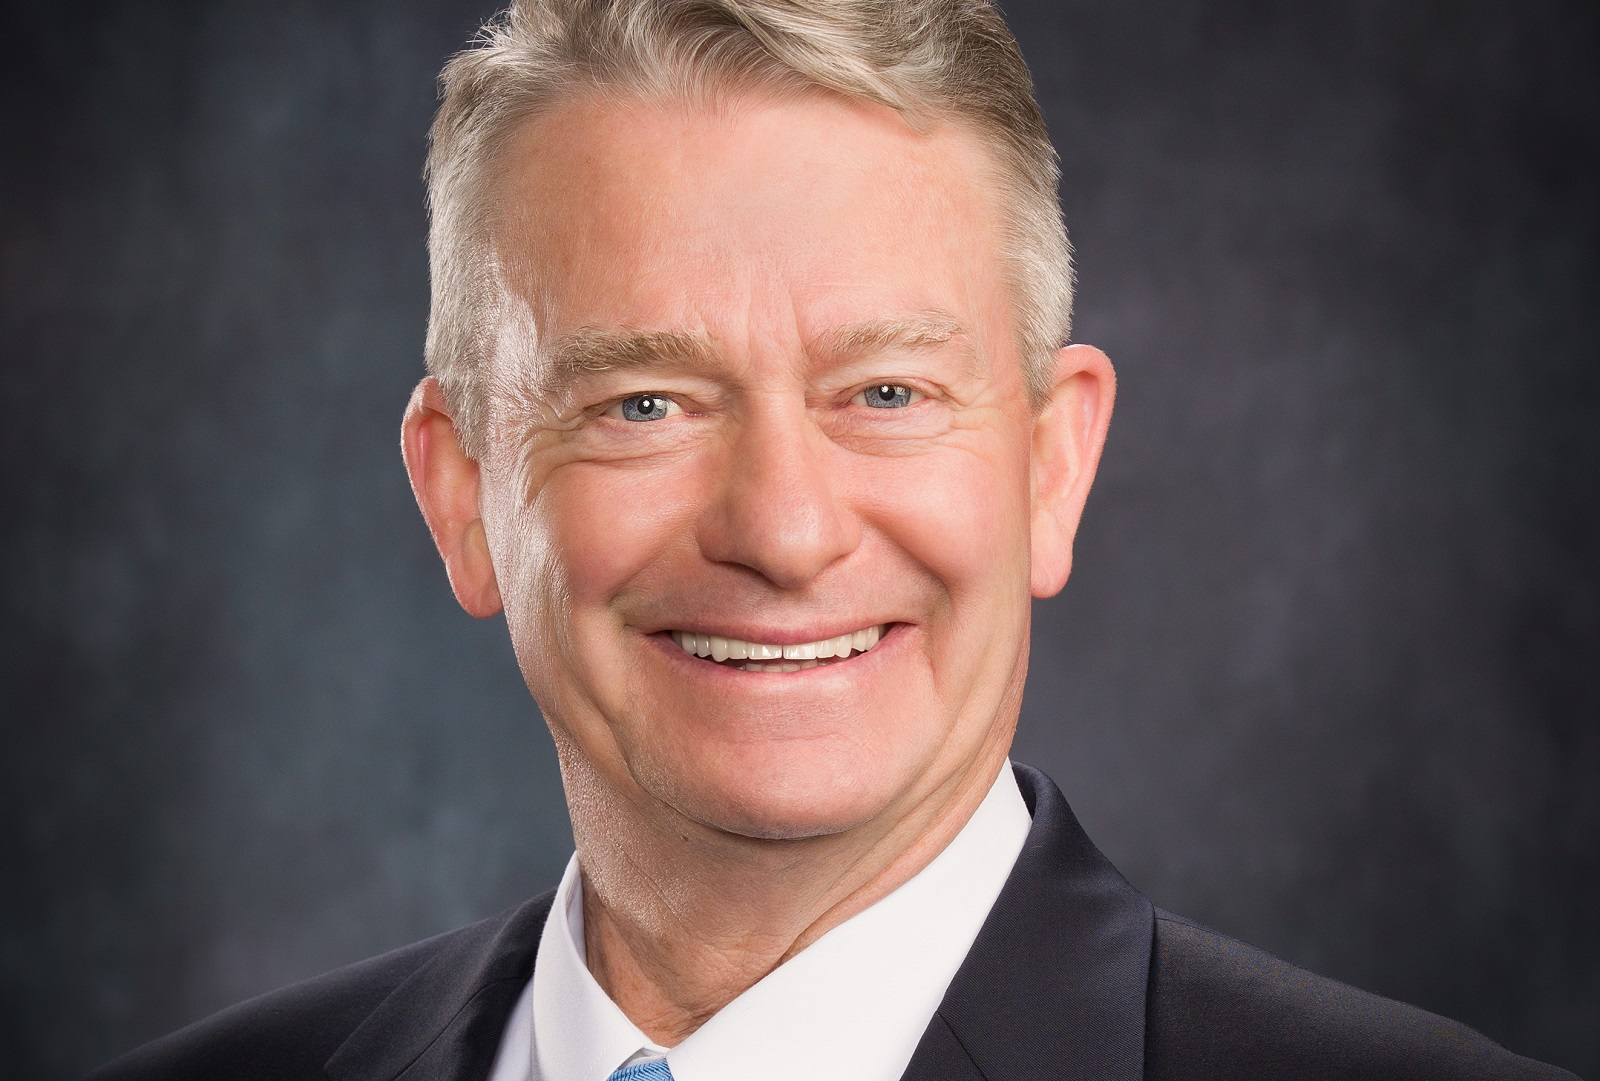 Republican Idaho governor Brad Little is focusing on attacking trans people